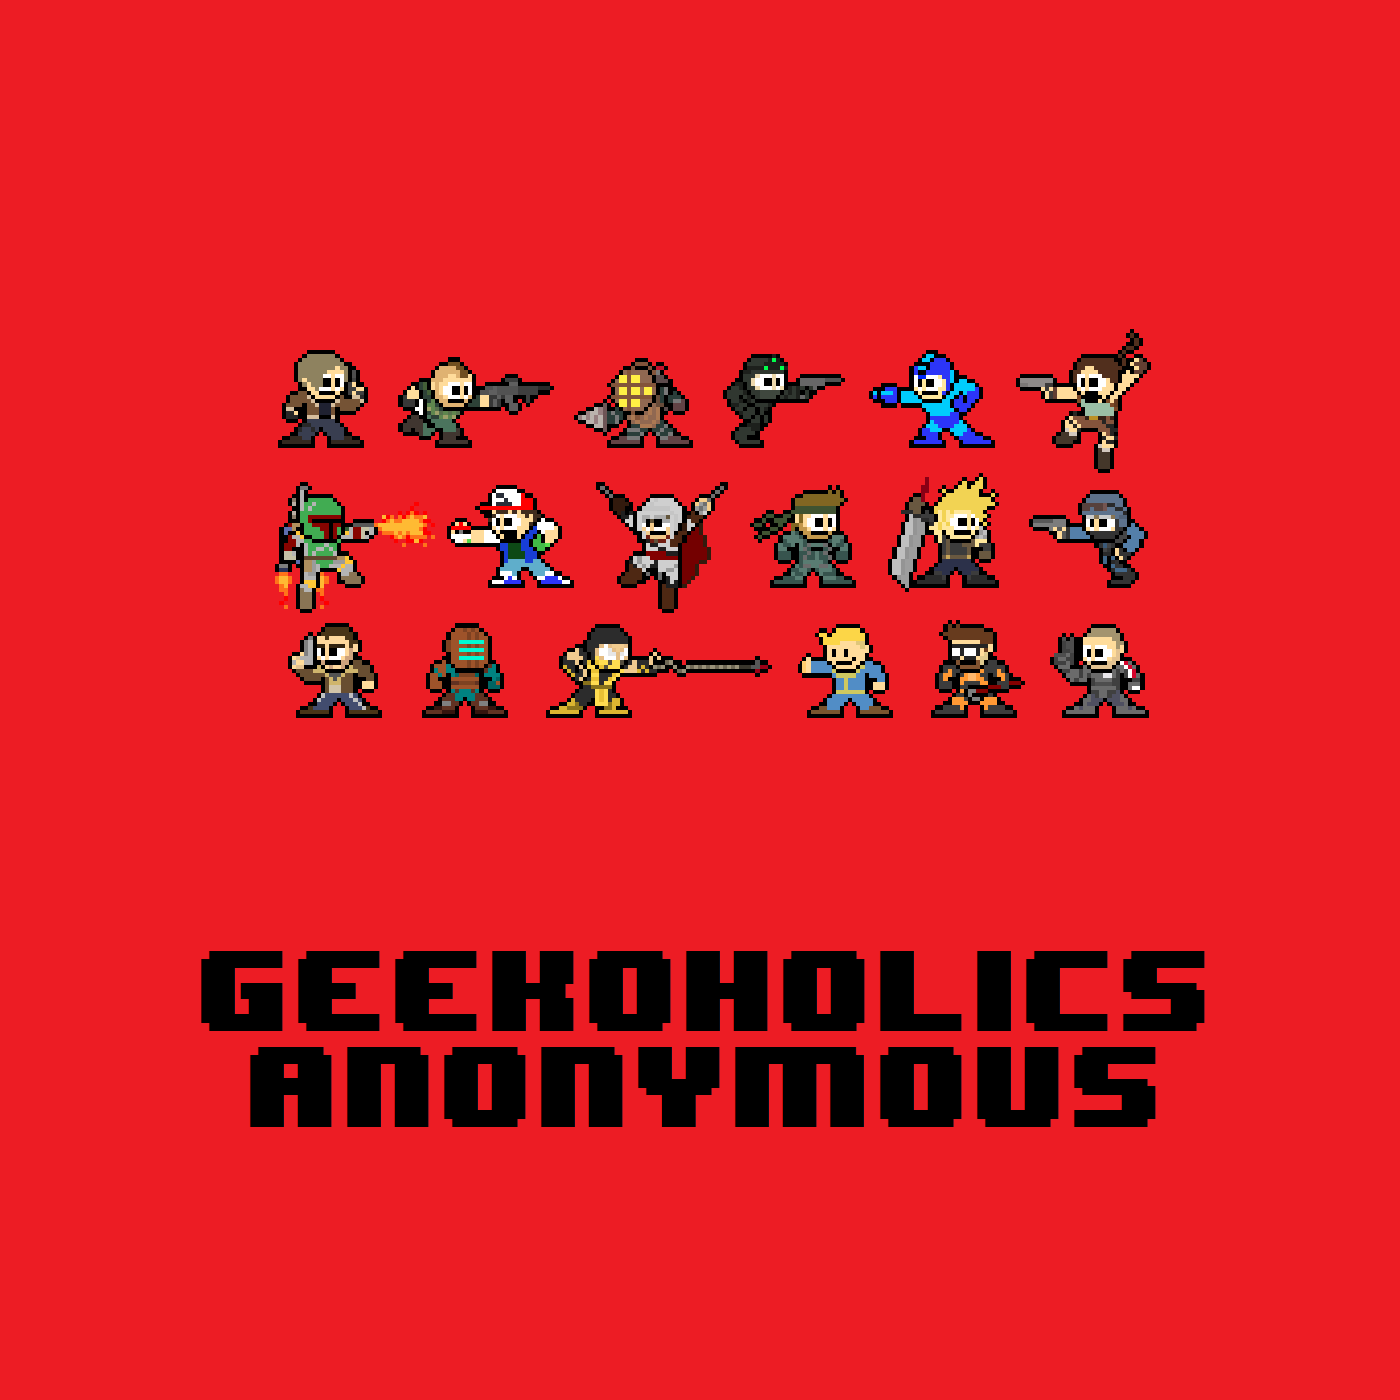 Outriders, Oddworld Soulstorm, E3 2021,  and more - Geekoholics Anonymous Podcast 300 show art